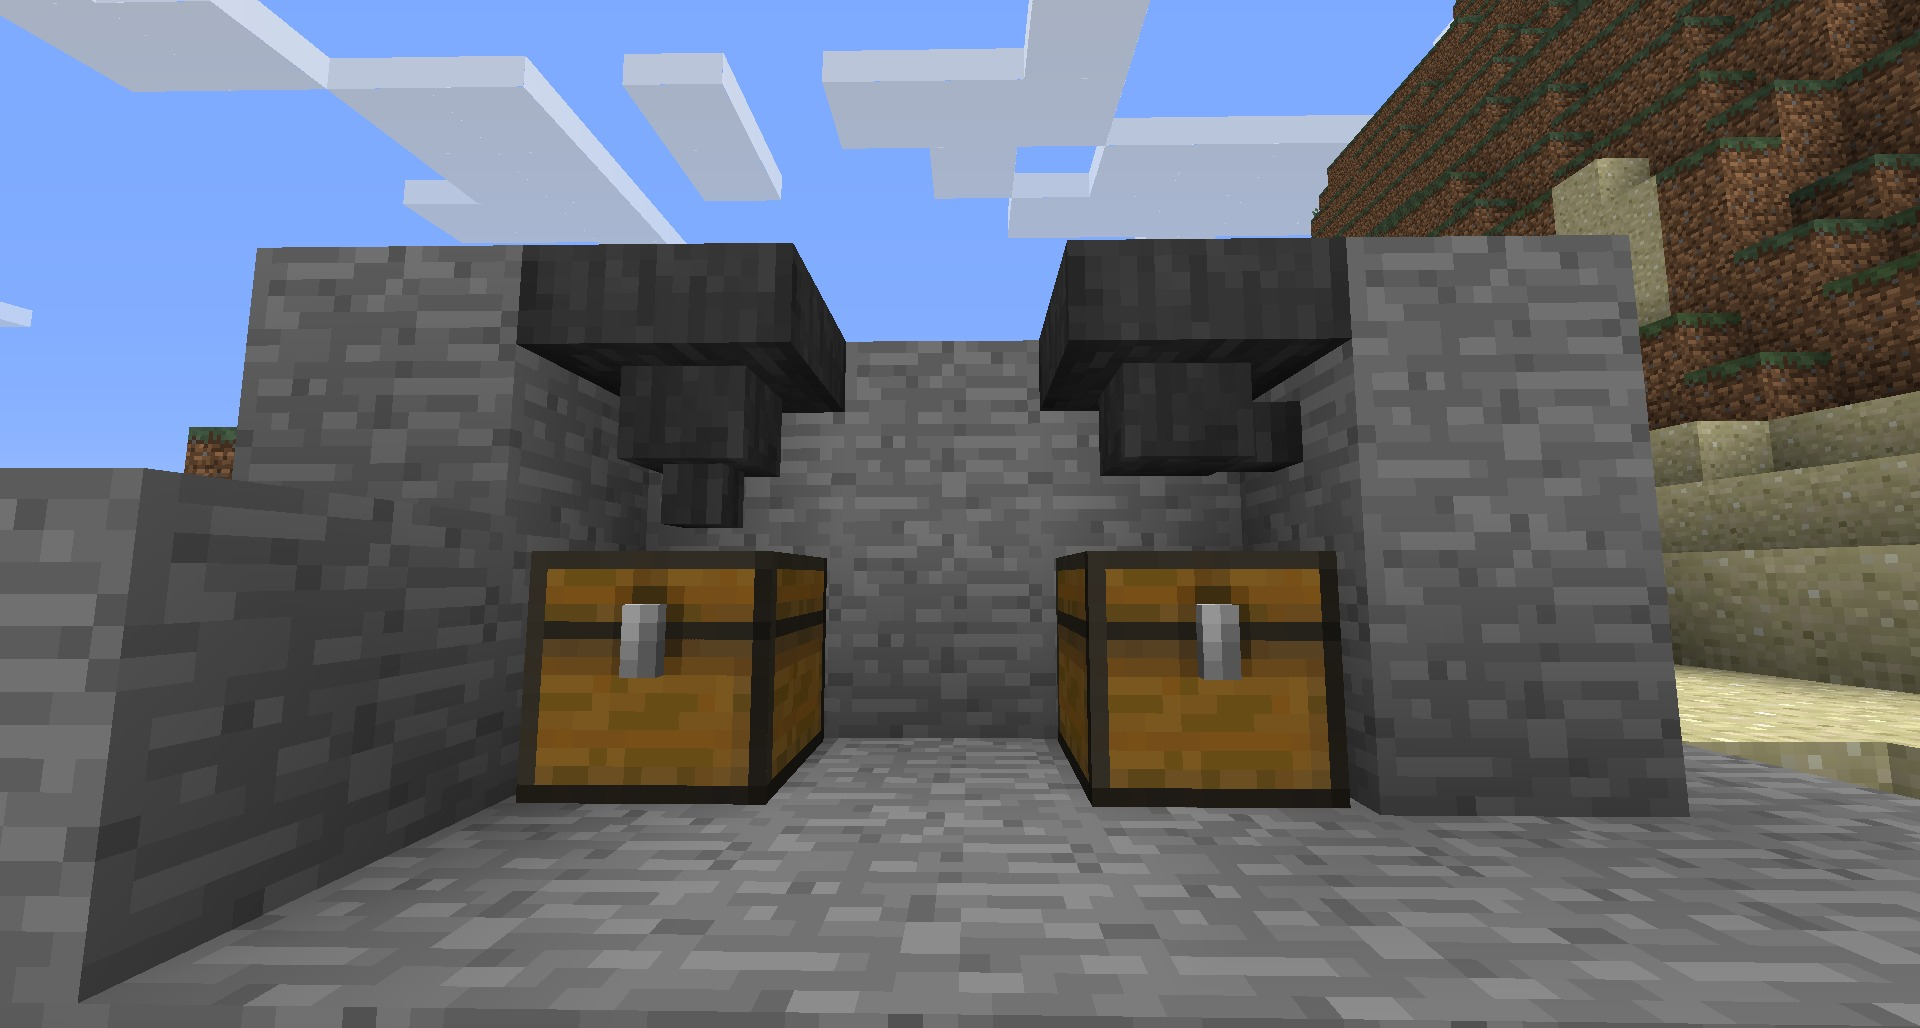 How to make a hopper in Minecraft